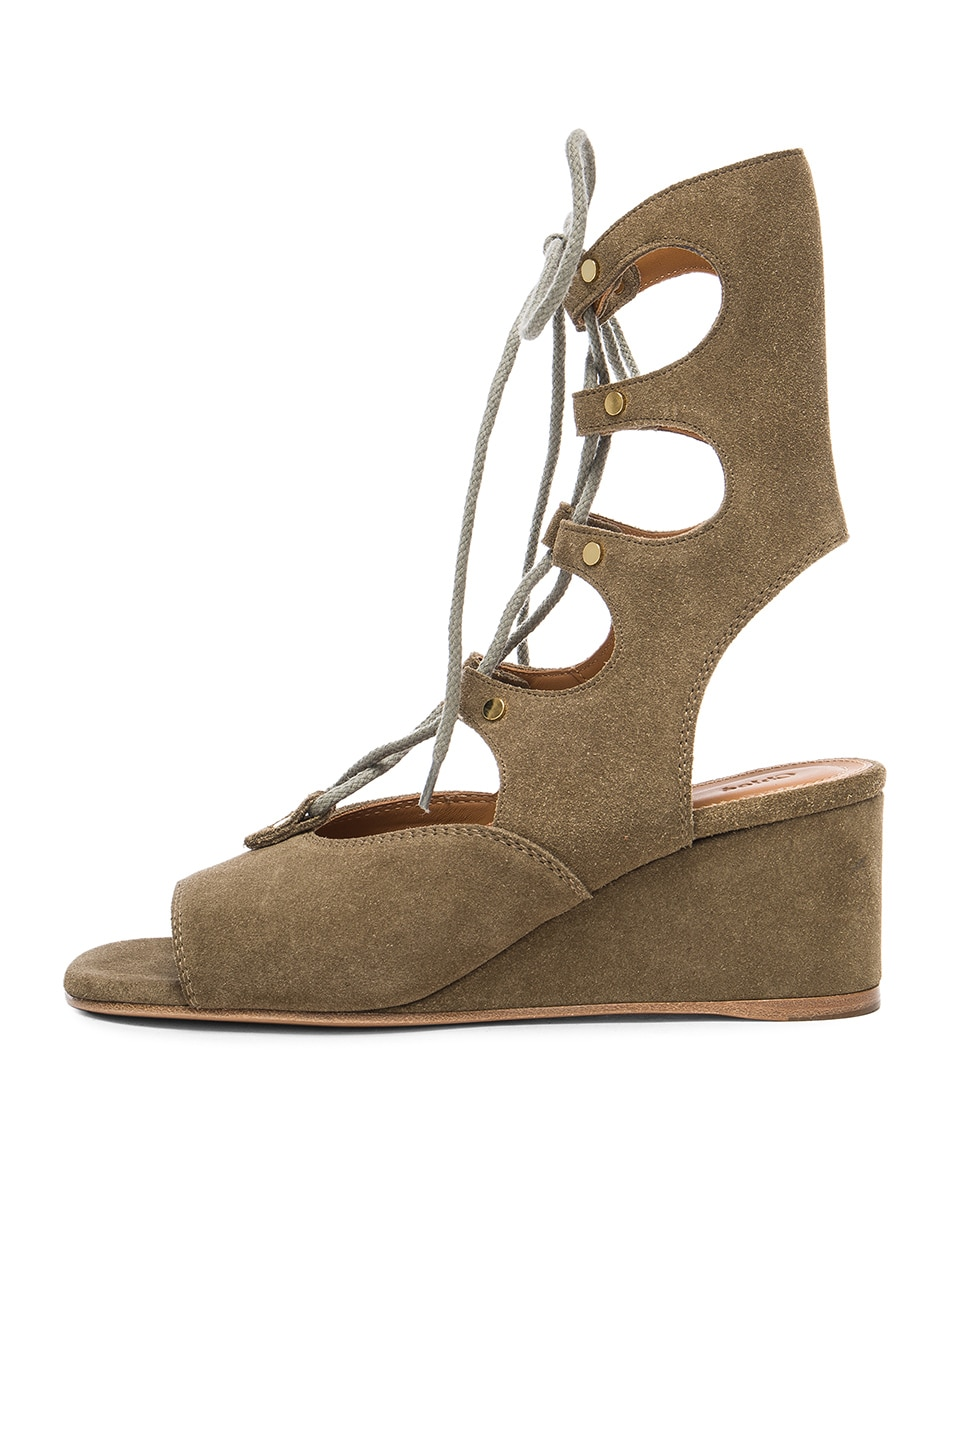 Image 5 of Chloe Foster Suede Wedge Sandals in Military Green